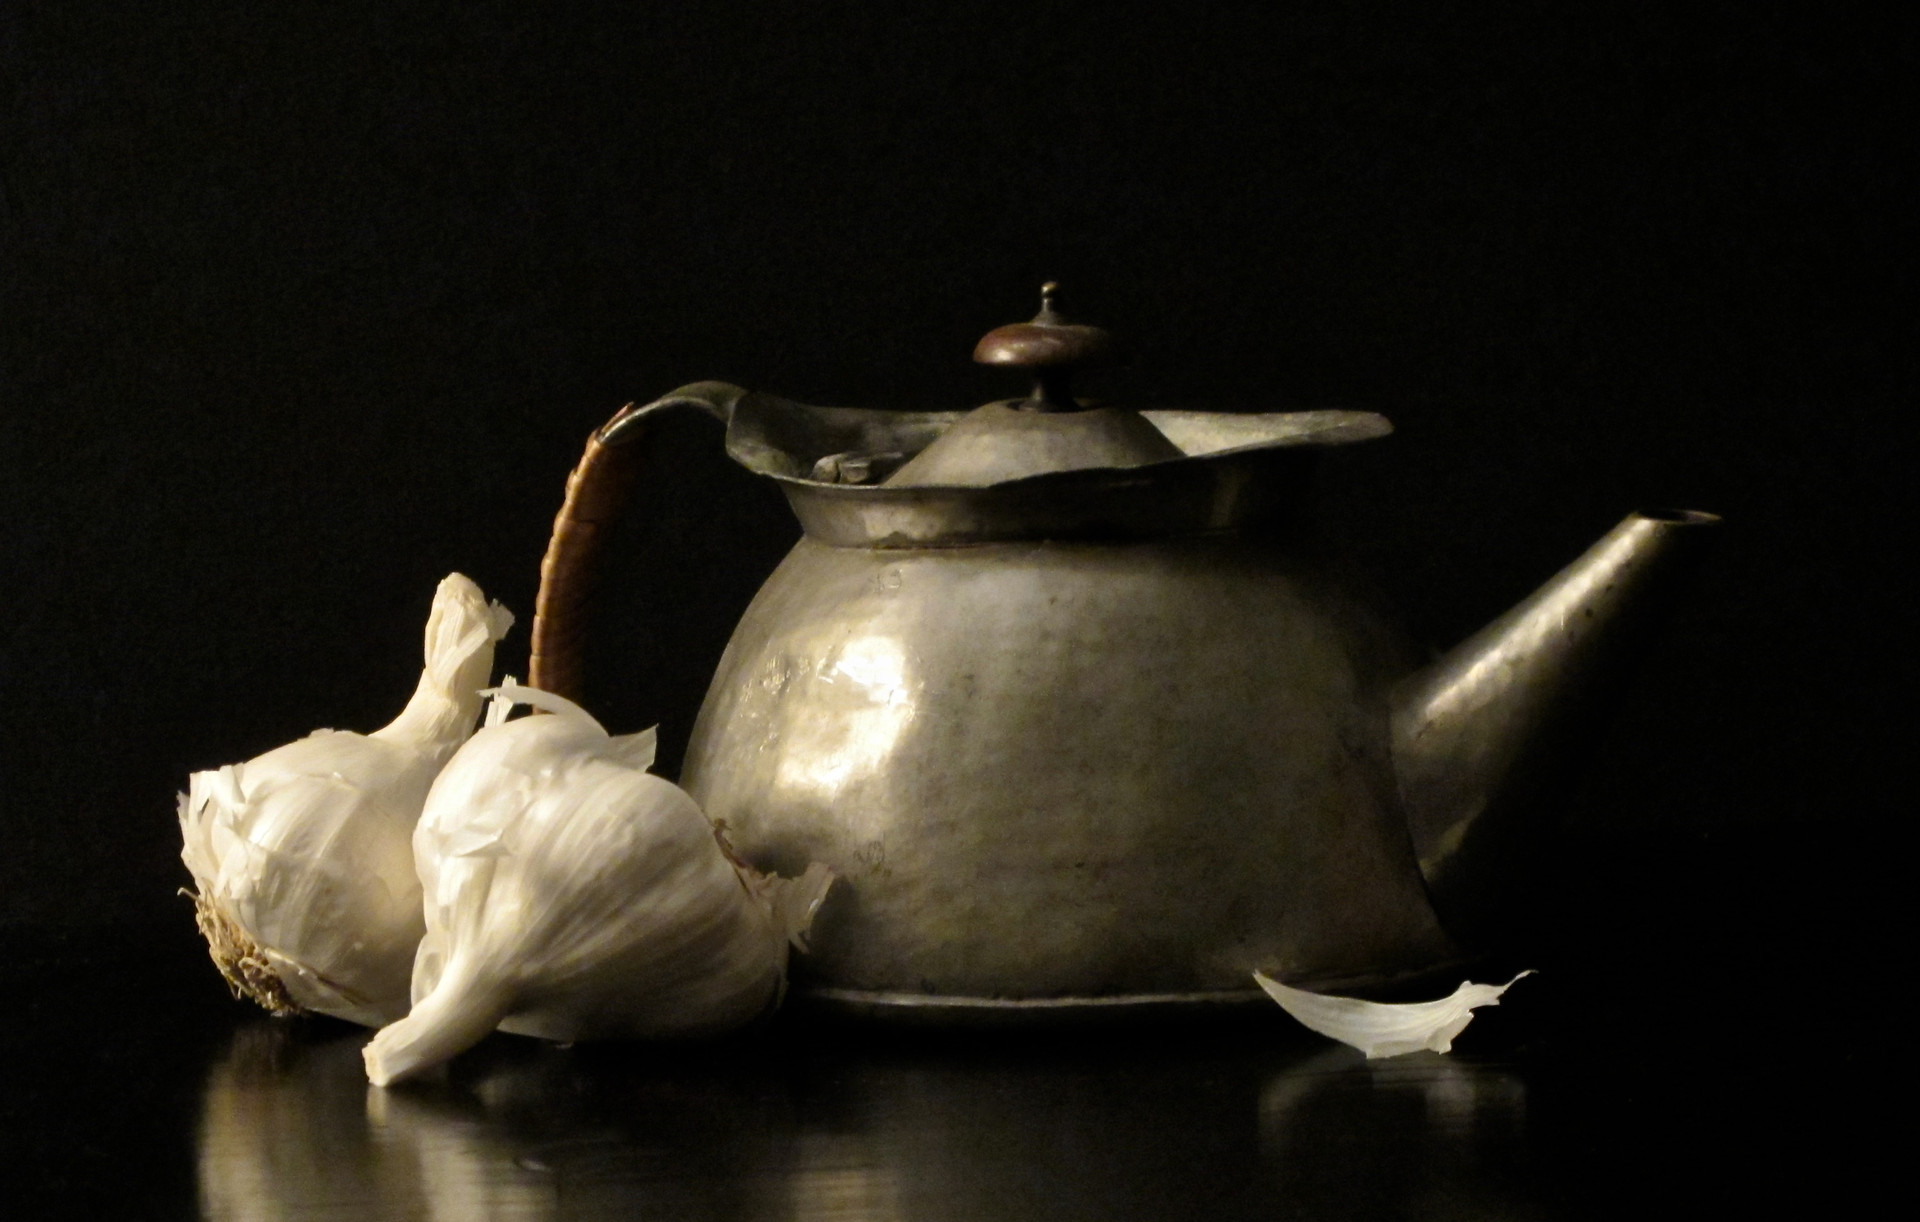 Garlic and Battered Teapot 1